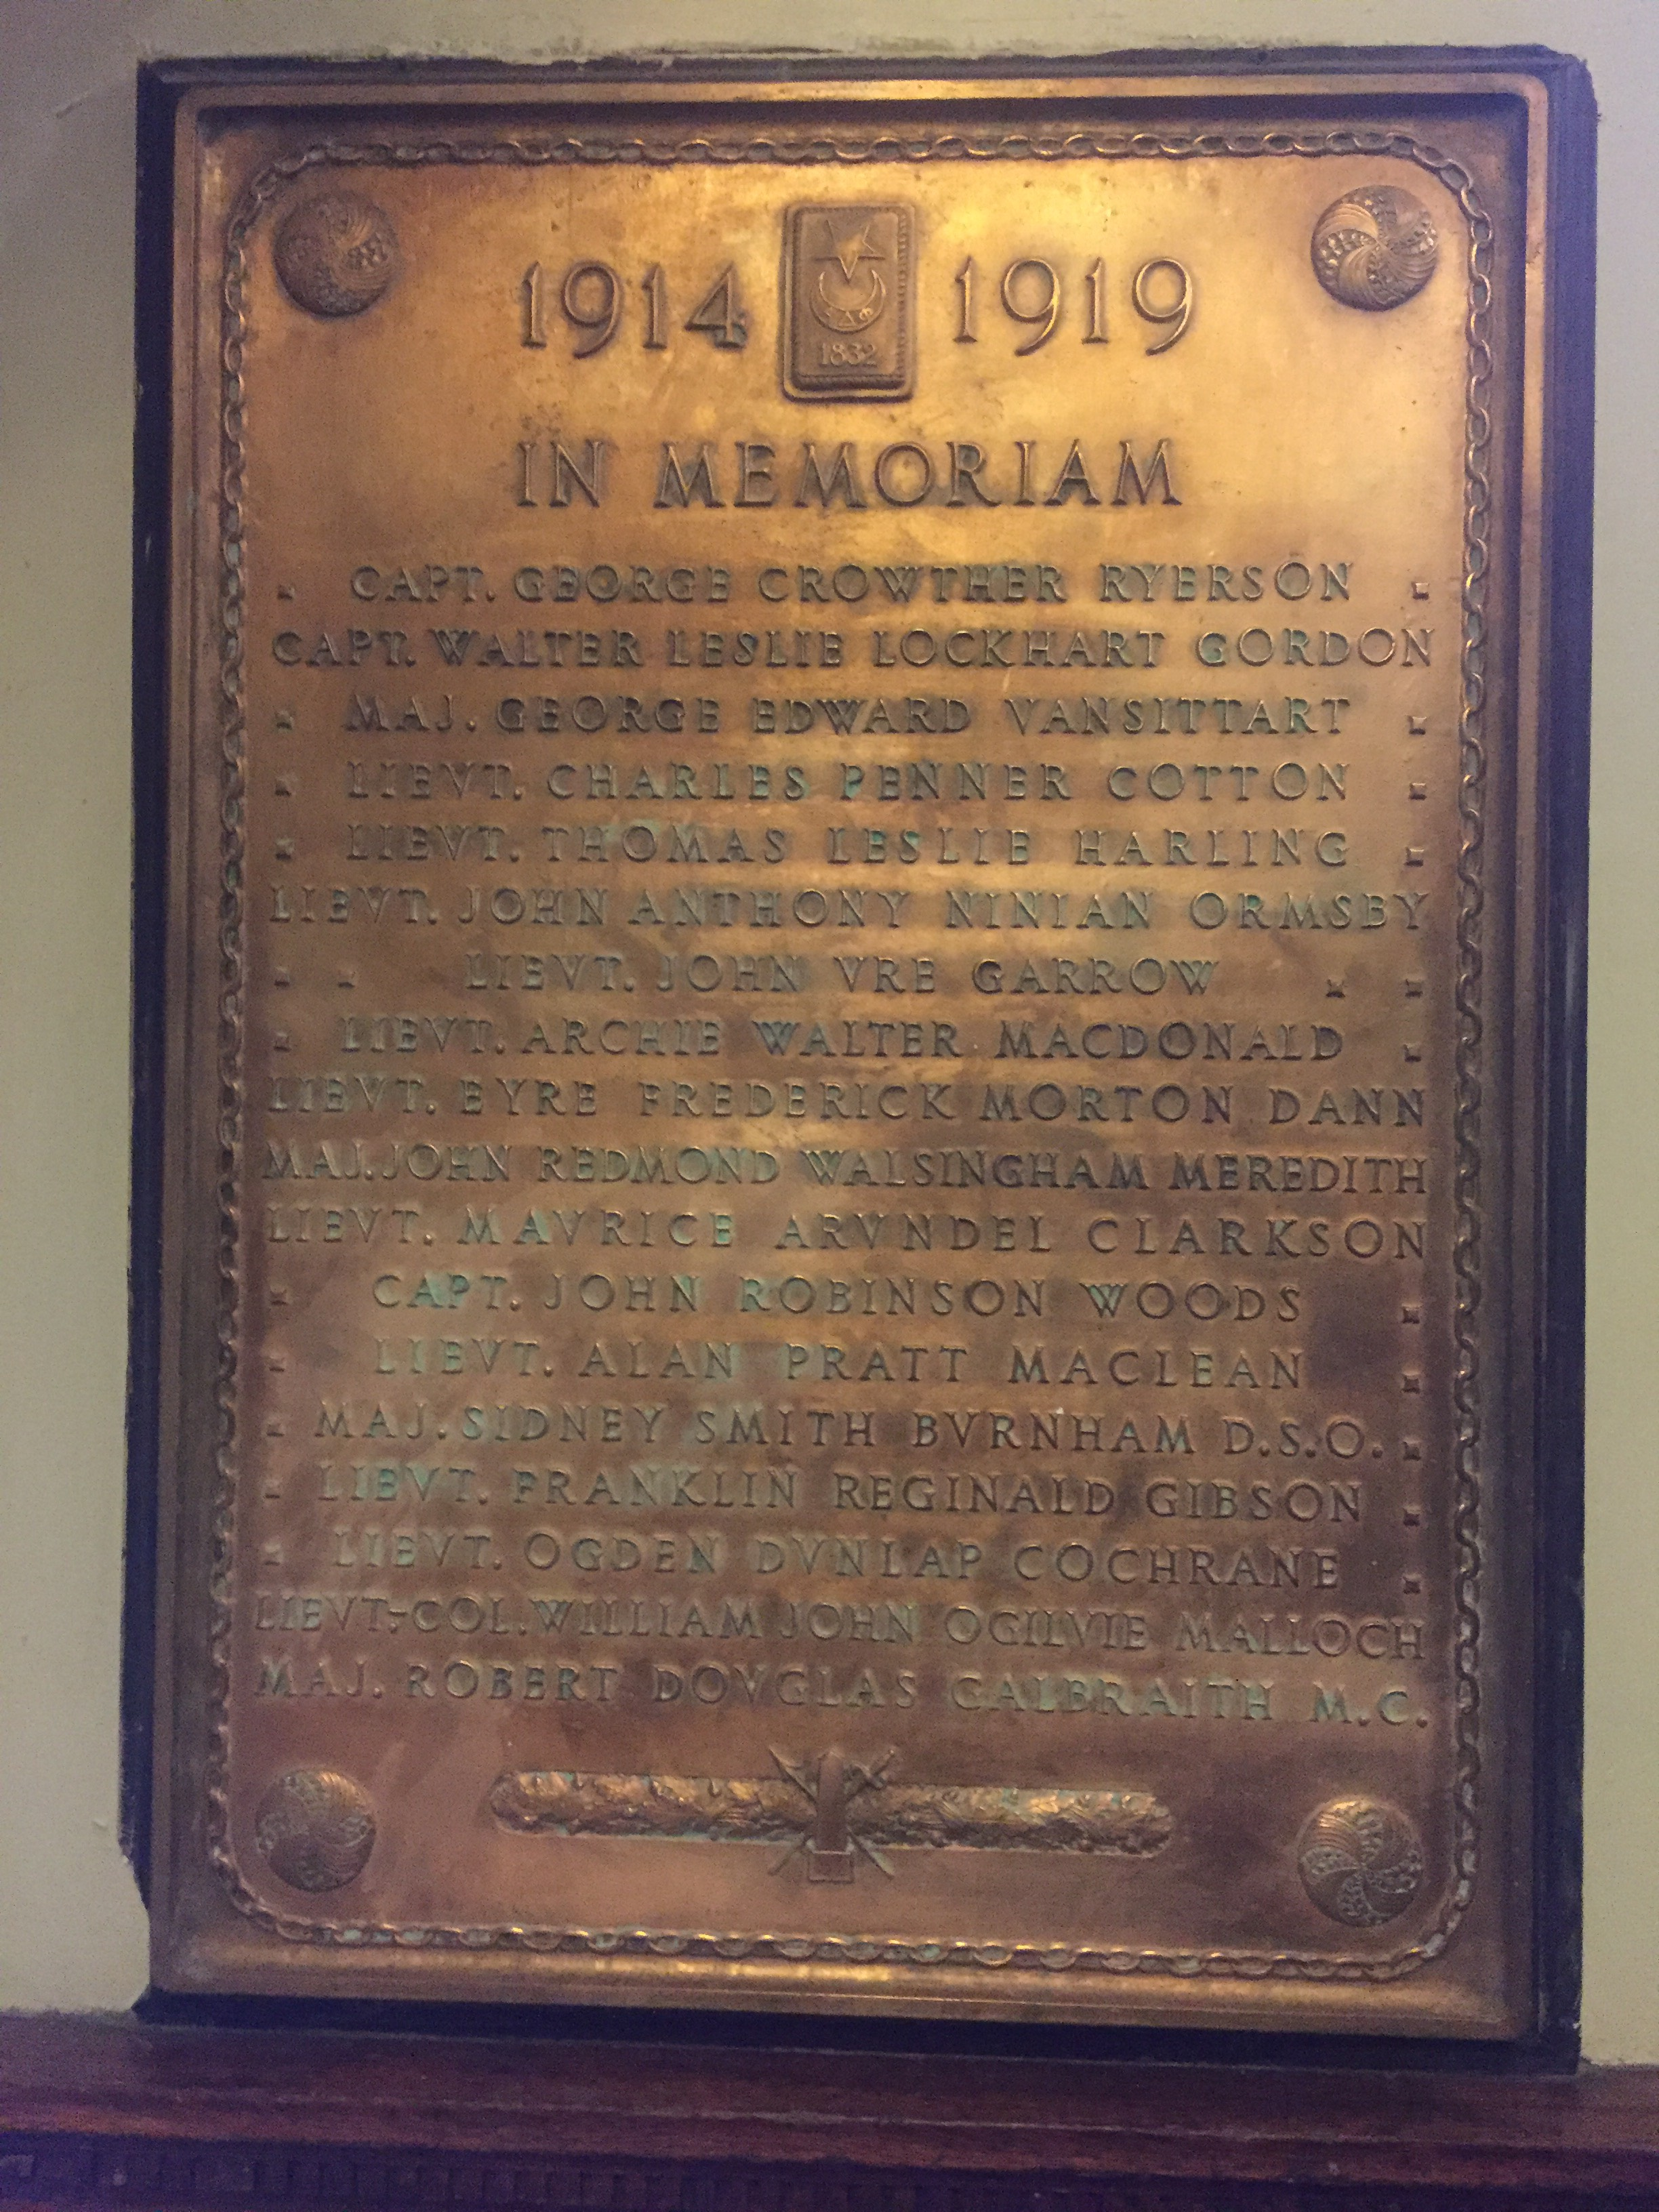 Memorial Plaque– Memorial Plaque – Lt. George Crowther Ryerson is remembered on this bronze memorial plaque. It is found in the foyer of the Alpha Delta Phi Chapter House at 94 Prince Arthur Avenue